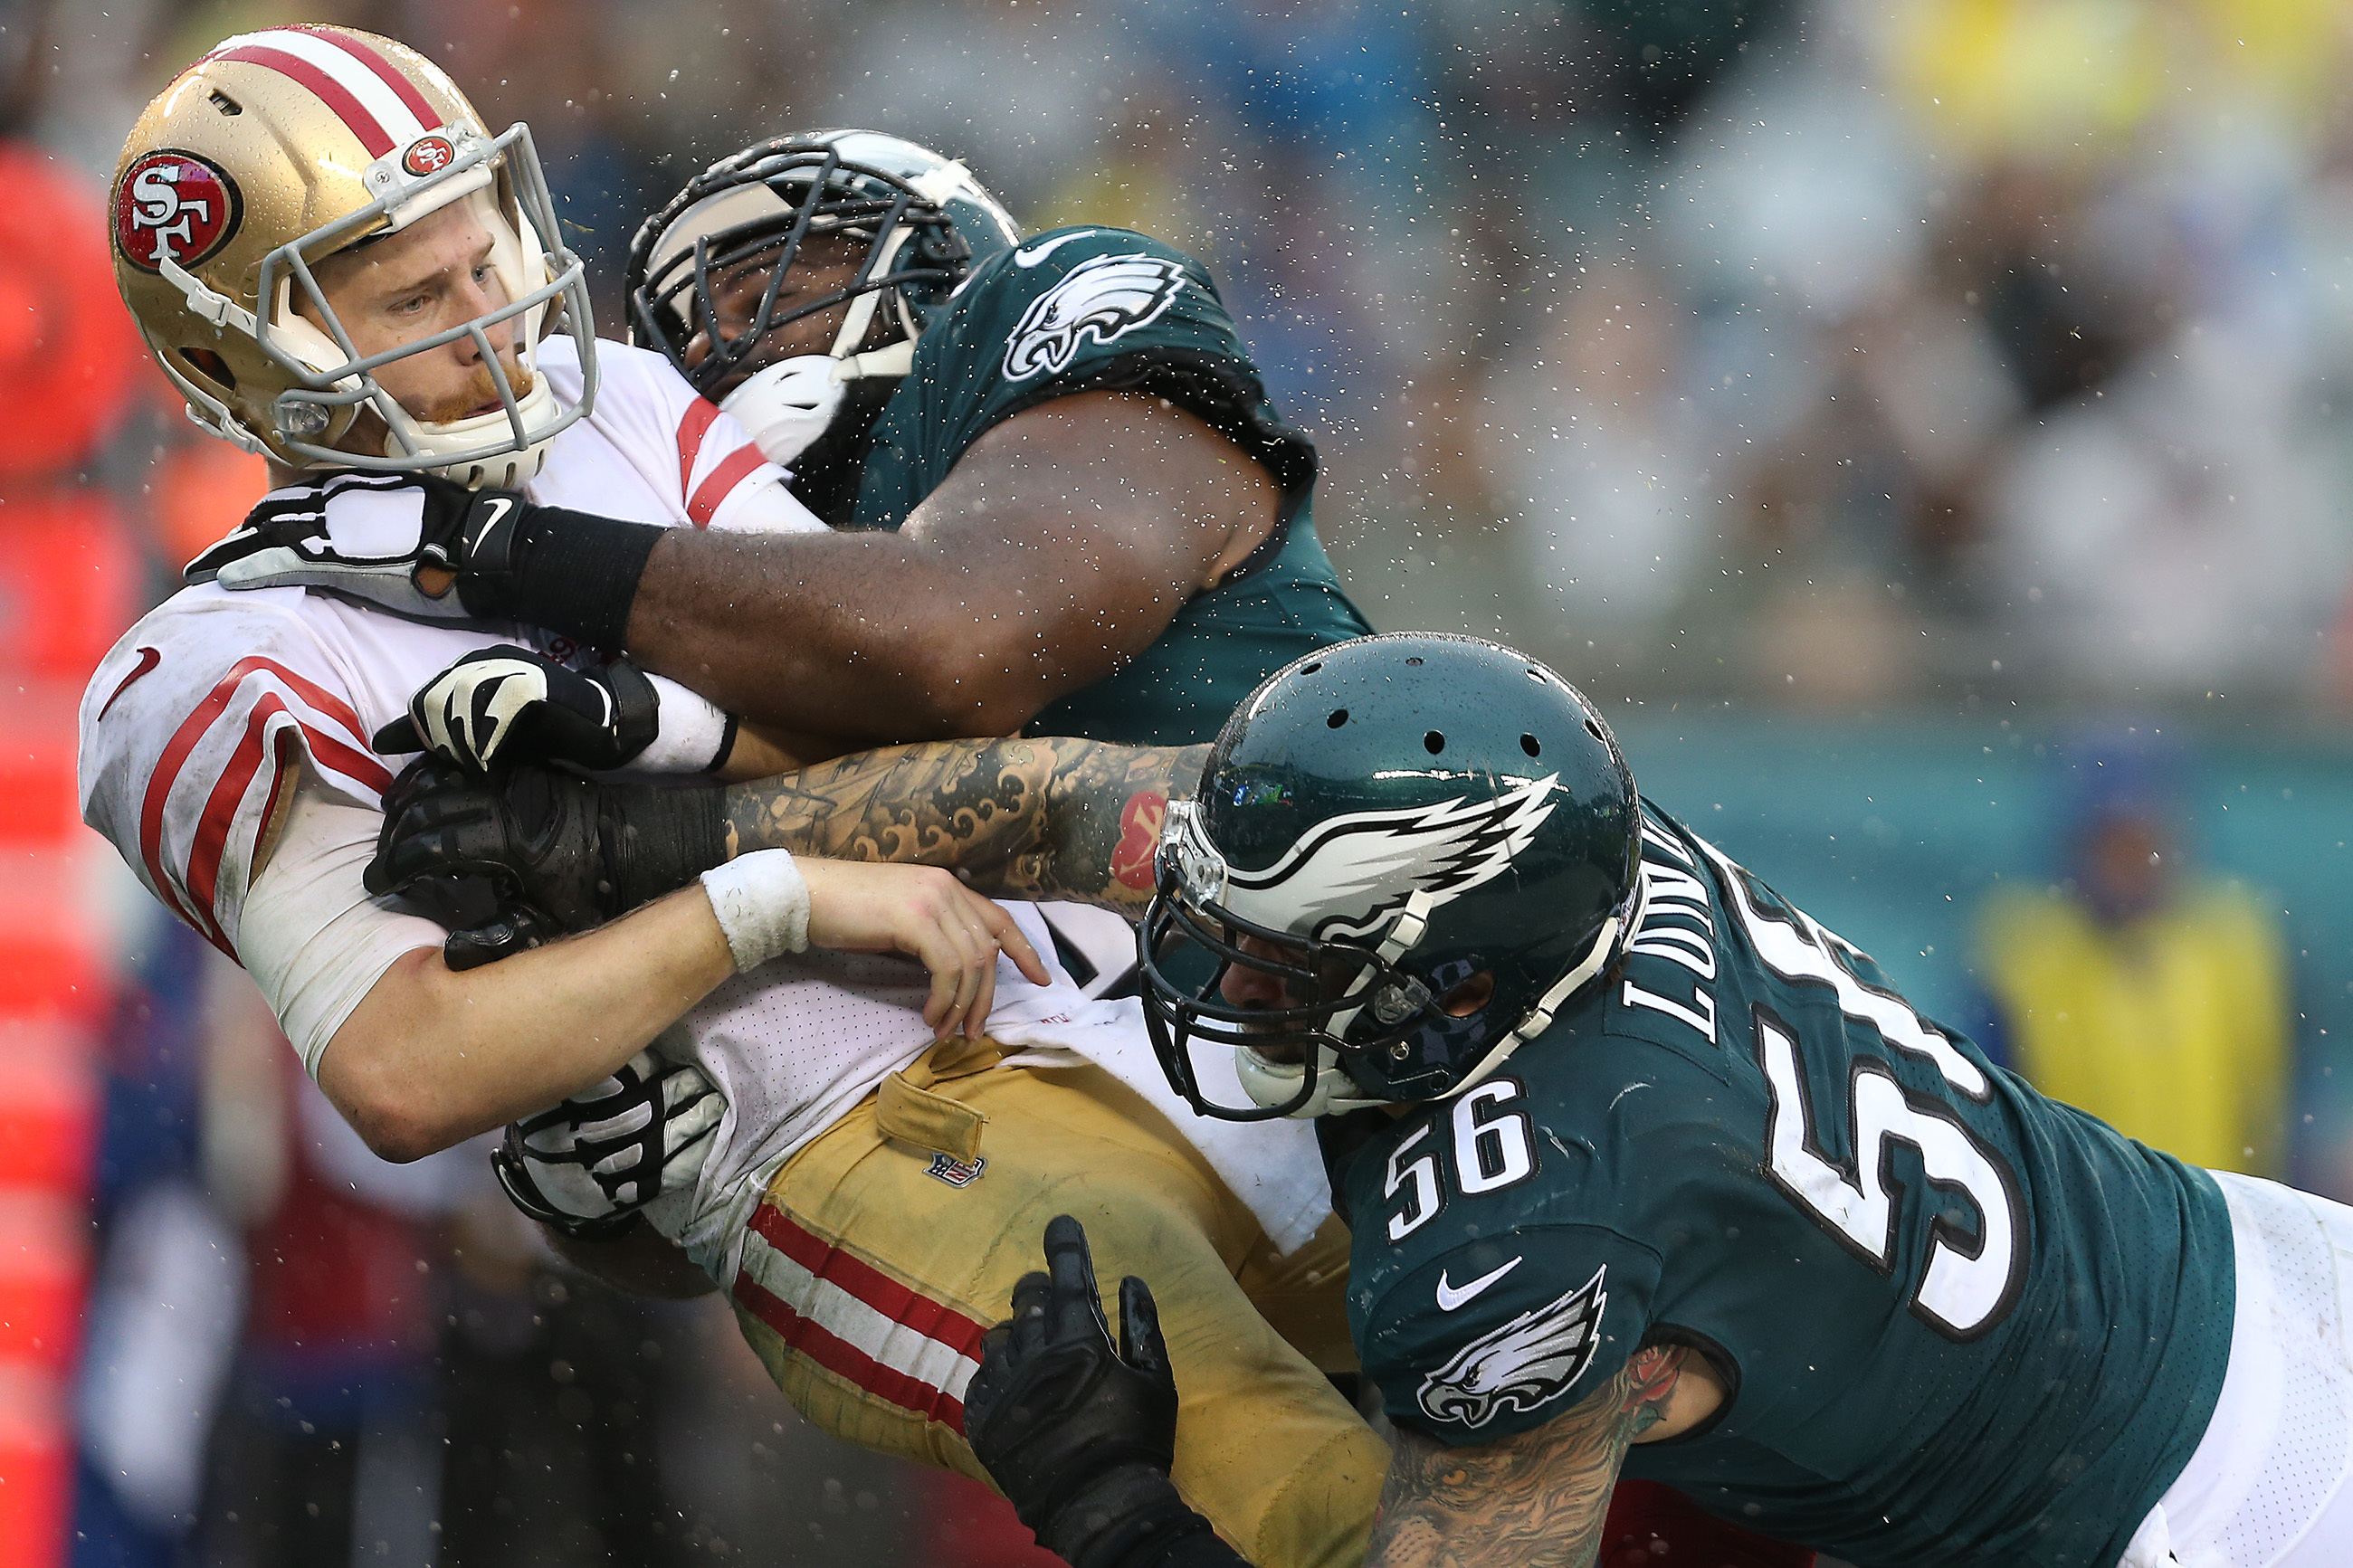 49ers' quarterback C.J. Beathard, left, is hit by the Eagles' Fletcher Cox, center, and Chris Long, right, after releasing the ball in the 3rd quarter. Philadelphia Eagles win 33-10 over the San Francisco 49ers in Philadelphia, PA on October 29, 2017. The pass fell incomplete. DAVID MAIALETTI / Staff Photographer